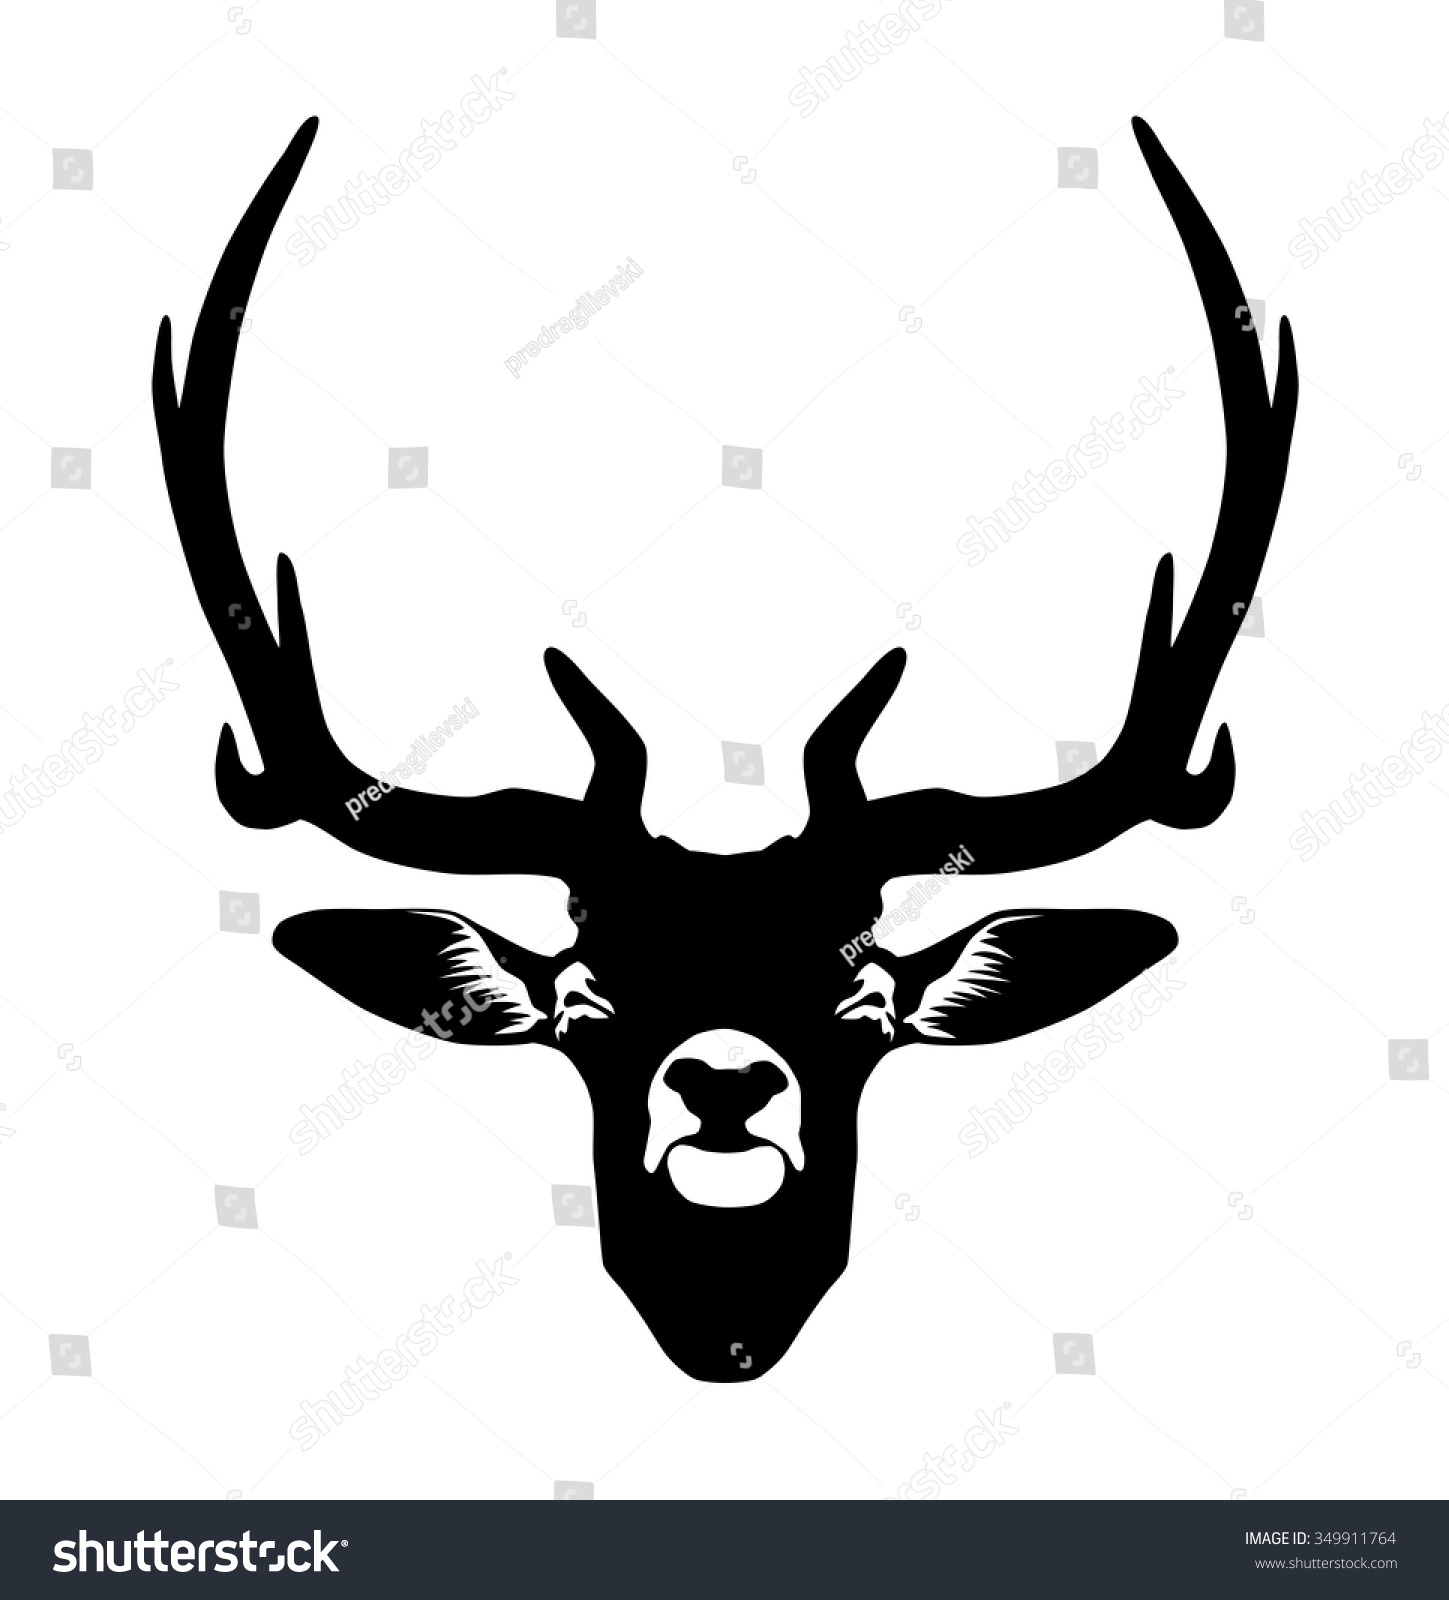 1449x1600 Deer Head Silhouette Free Download Clip Art On Bright Antlers